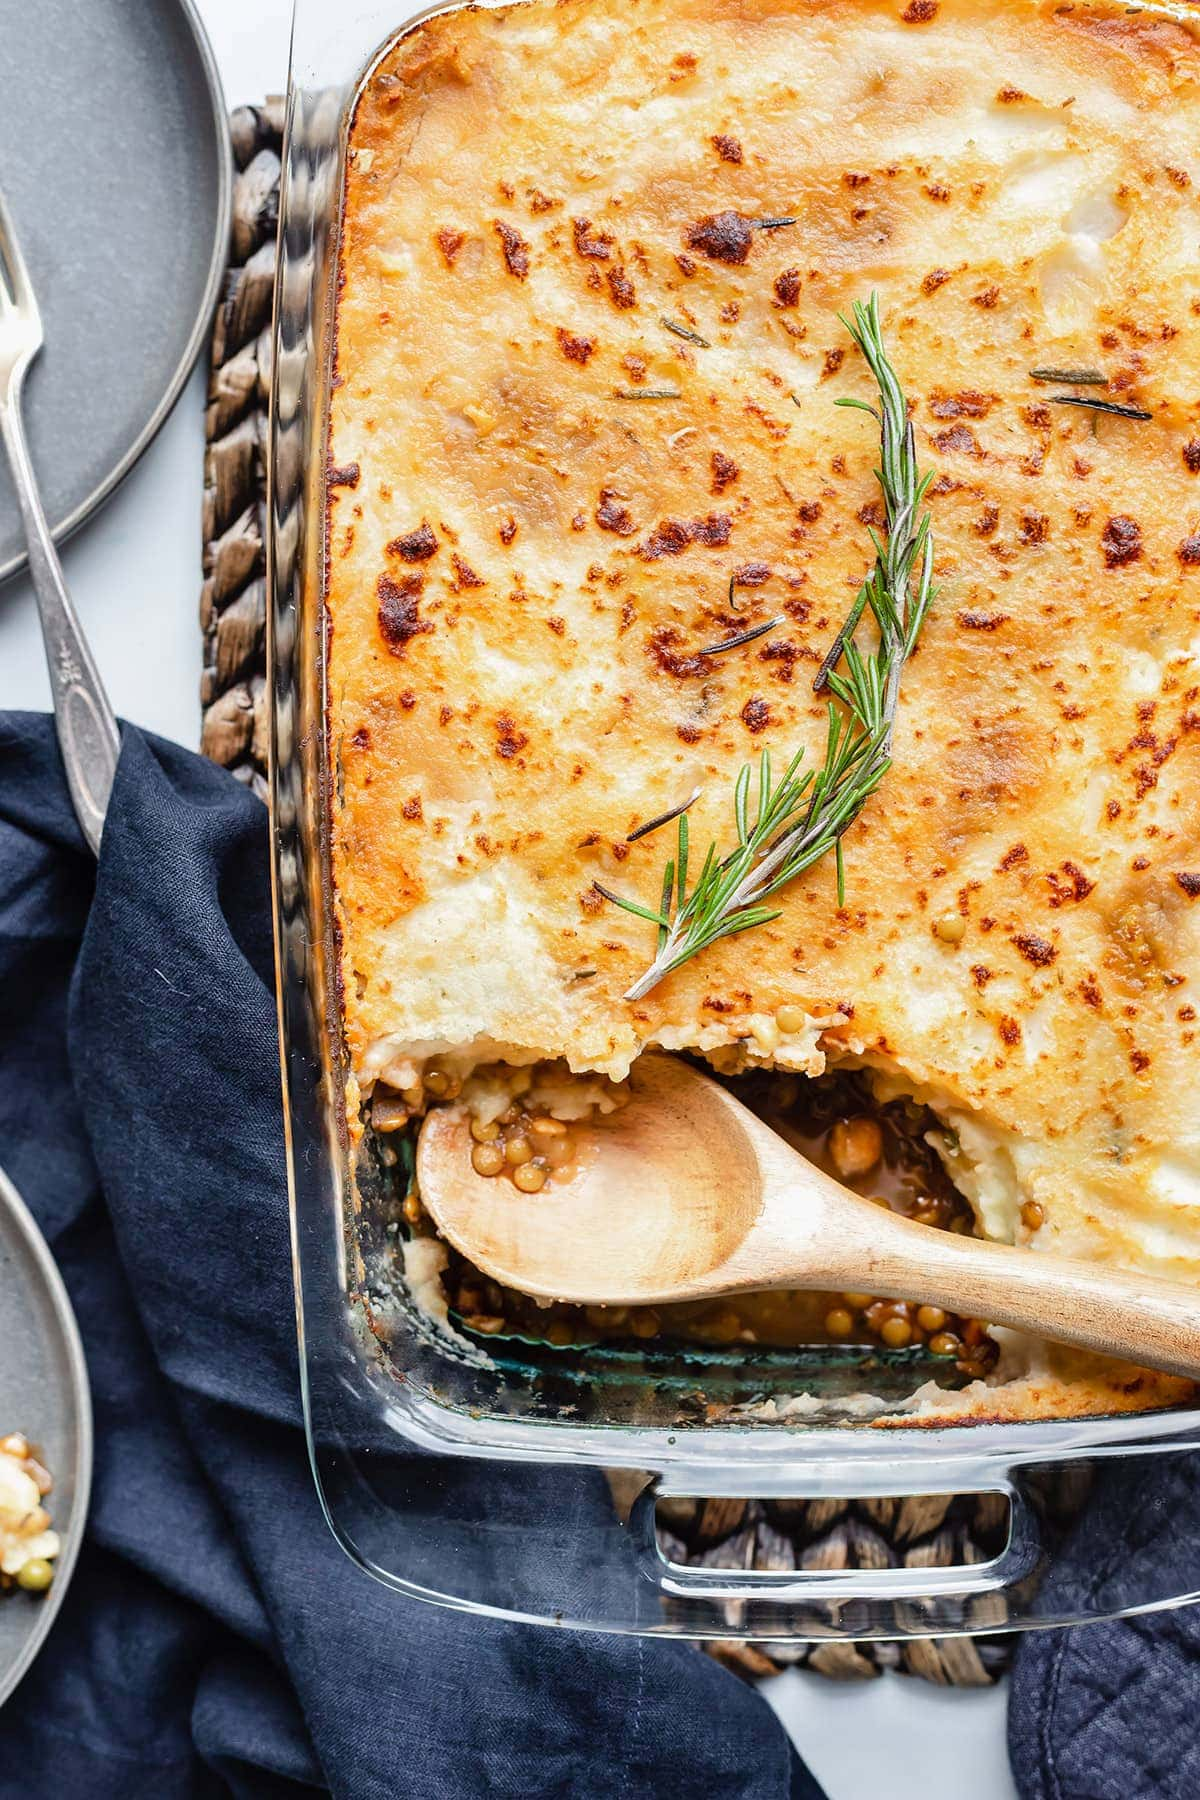 Overlay vegan lentil shepherd's pie in a rectangular glass dish on a brown background with a wooden spoon and rosemary sprig for garnish